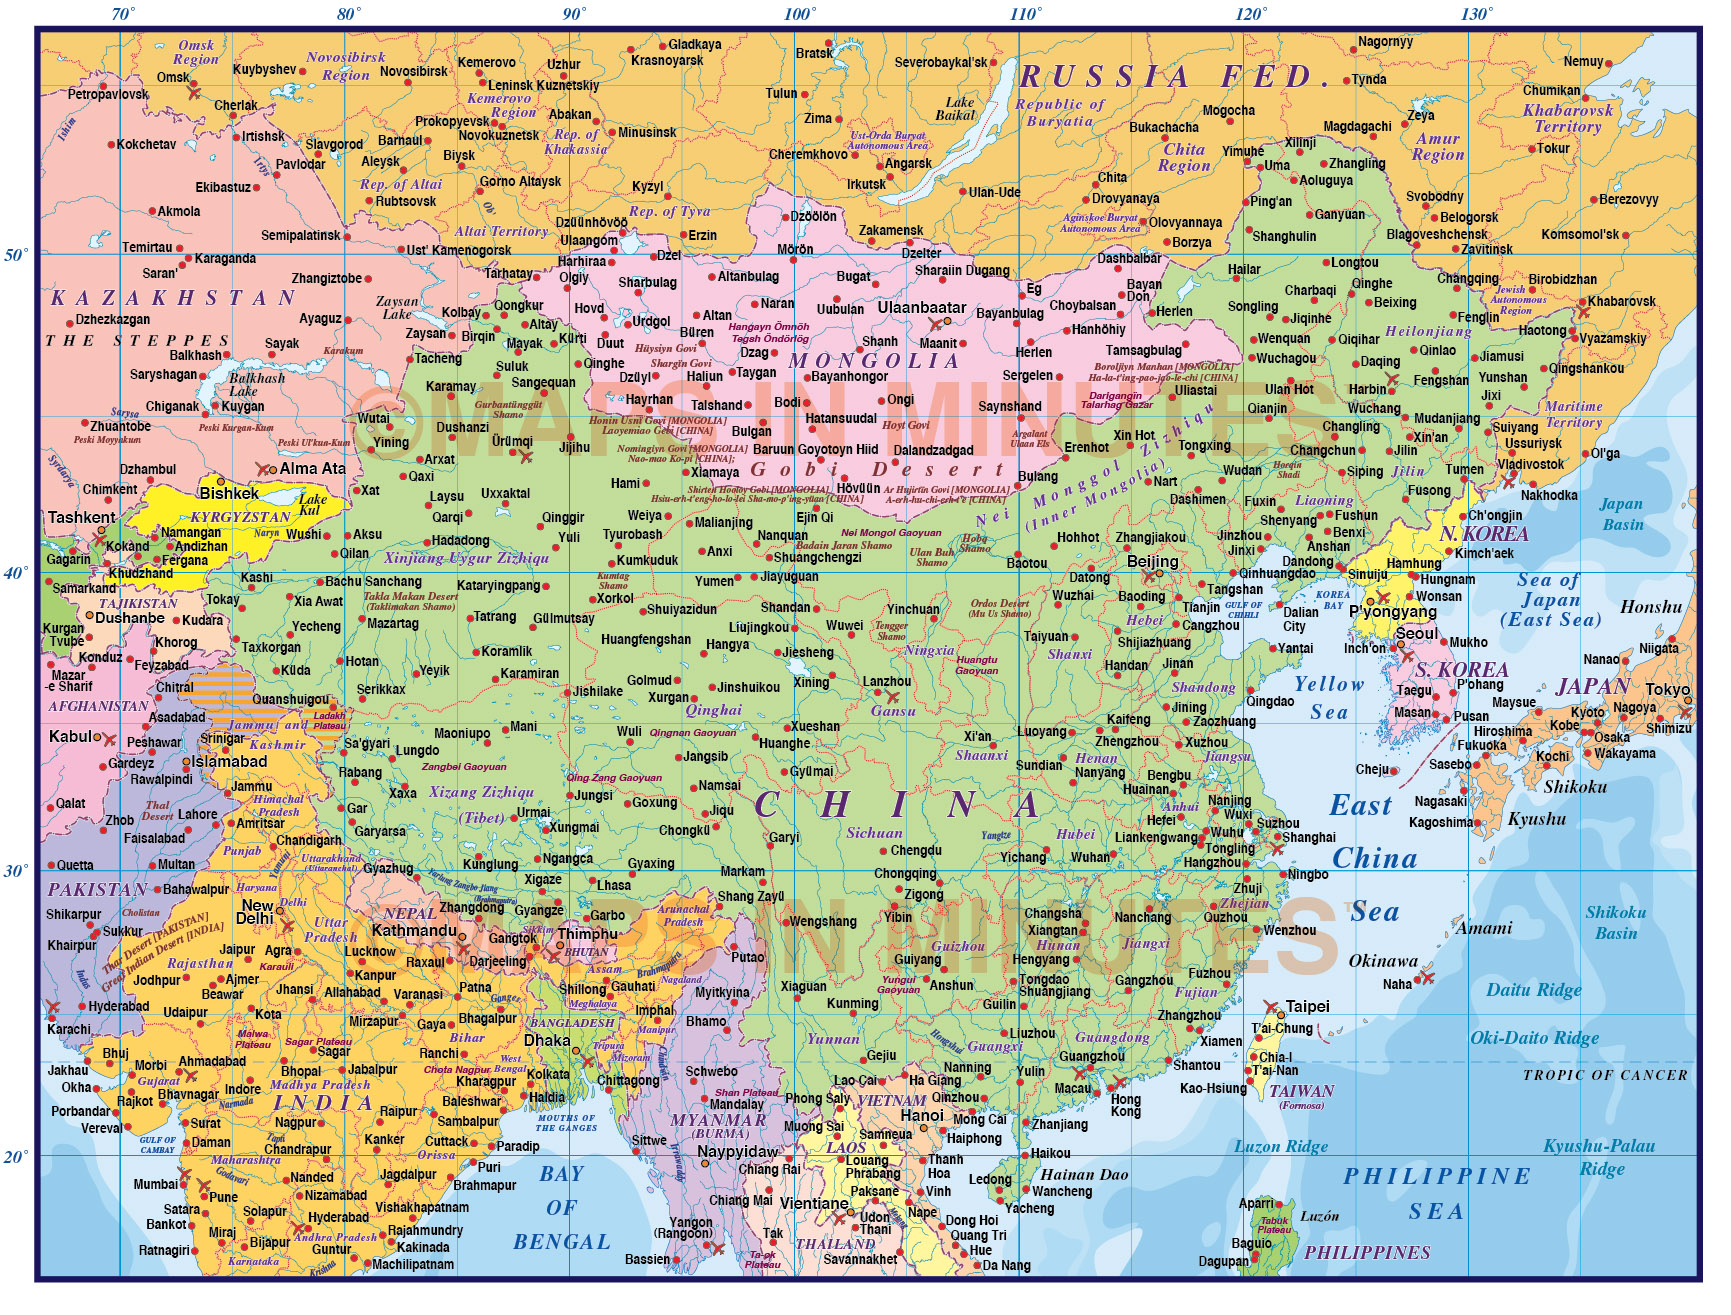 Digital Vector China Political Country Map, First Level @10,000,000 Scale In Illustrator Layered